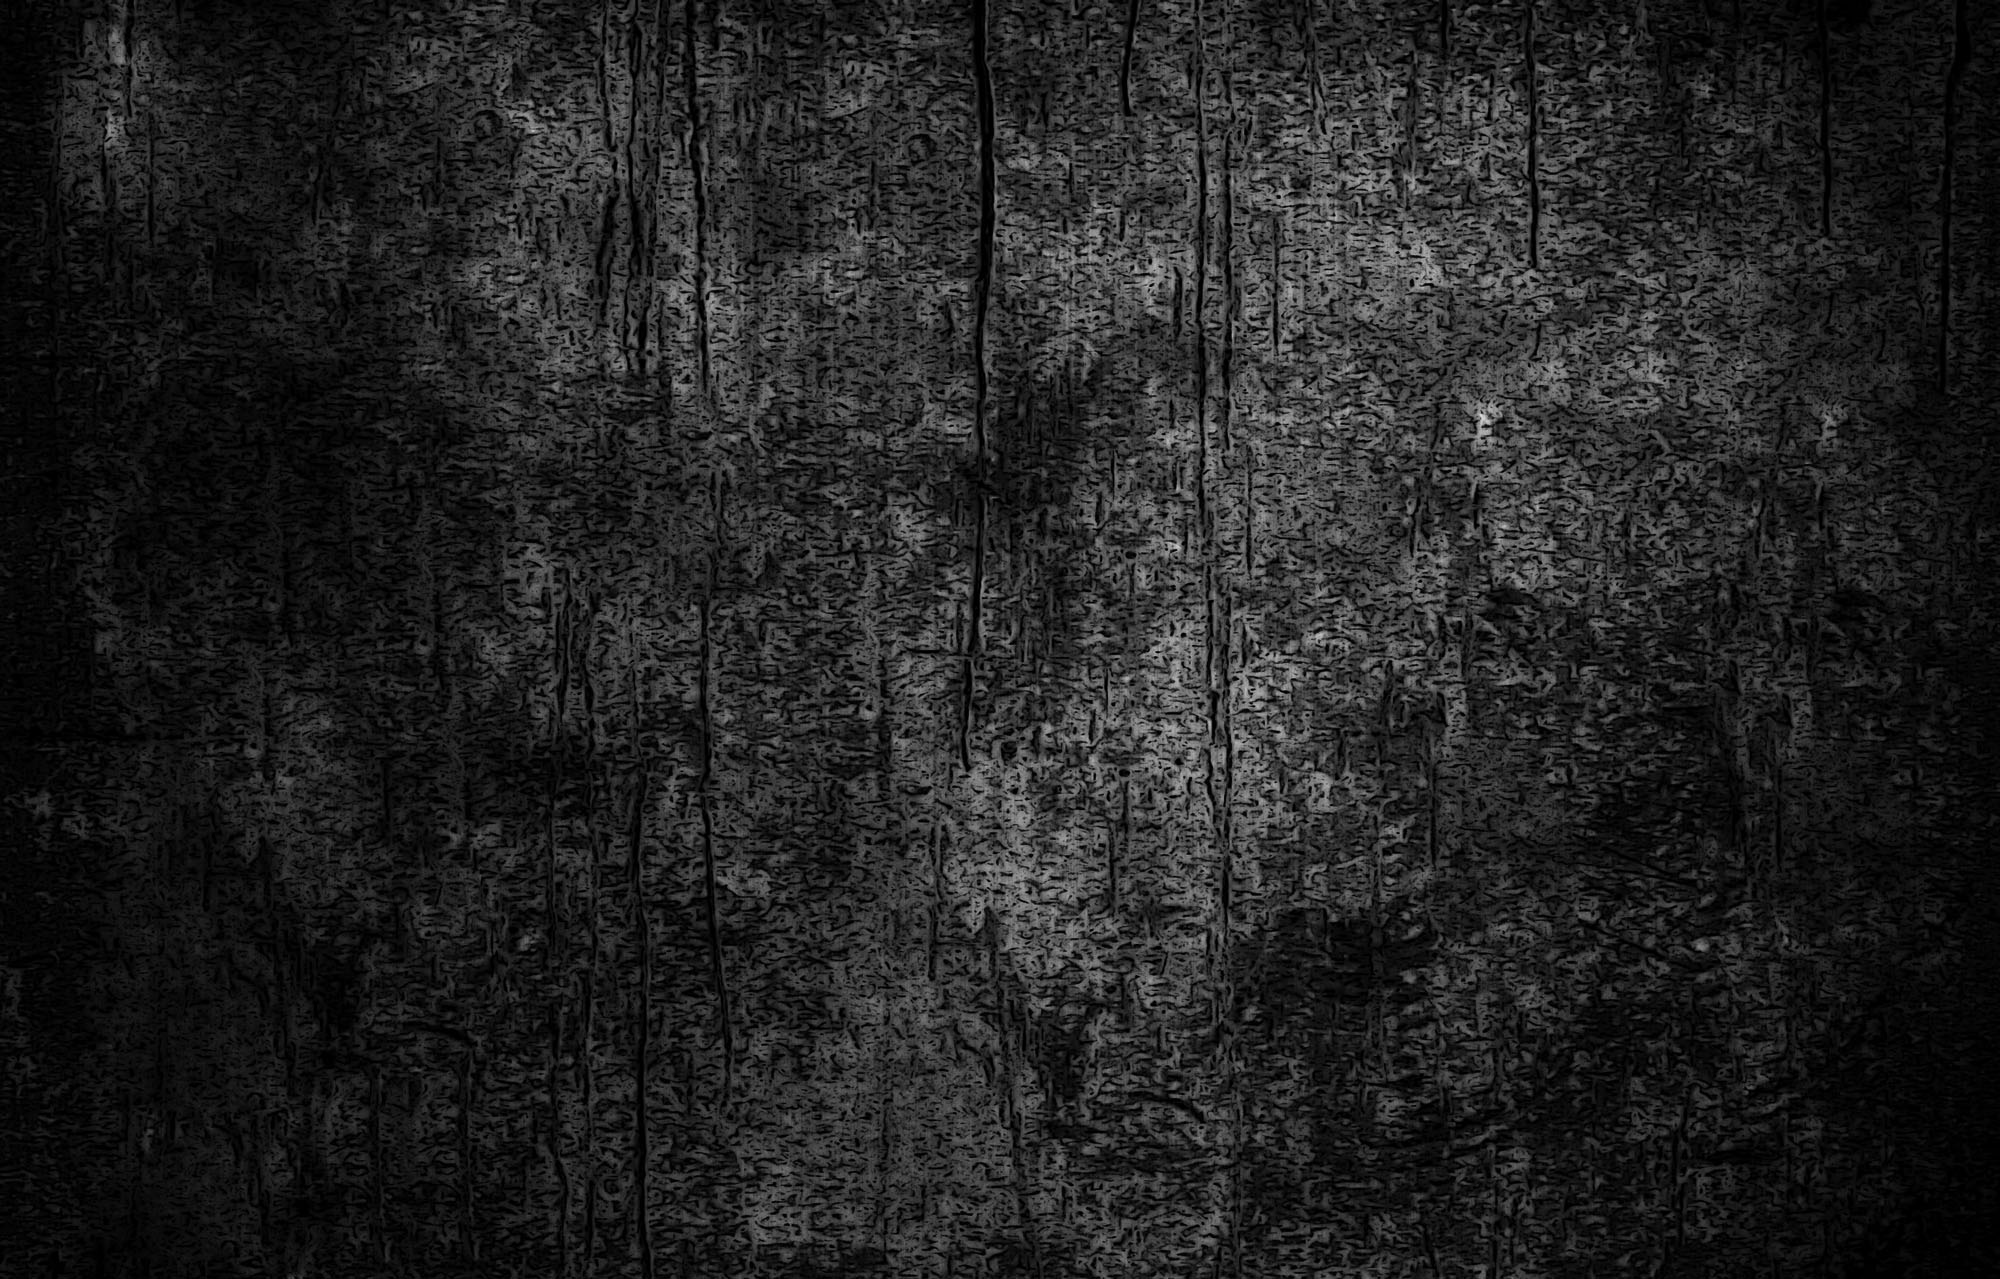 Dark Grunge Background Tumblr Dark Grunge Background...